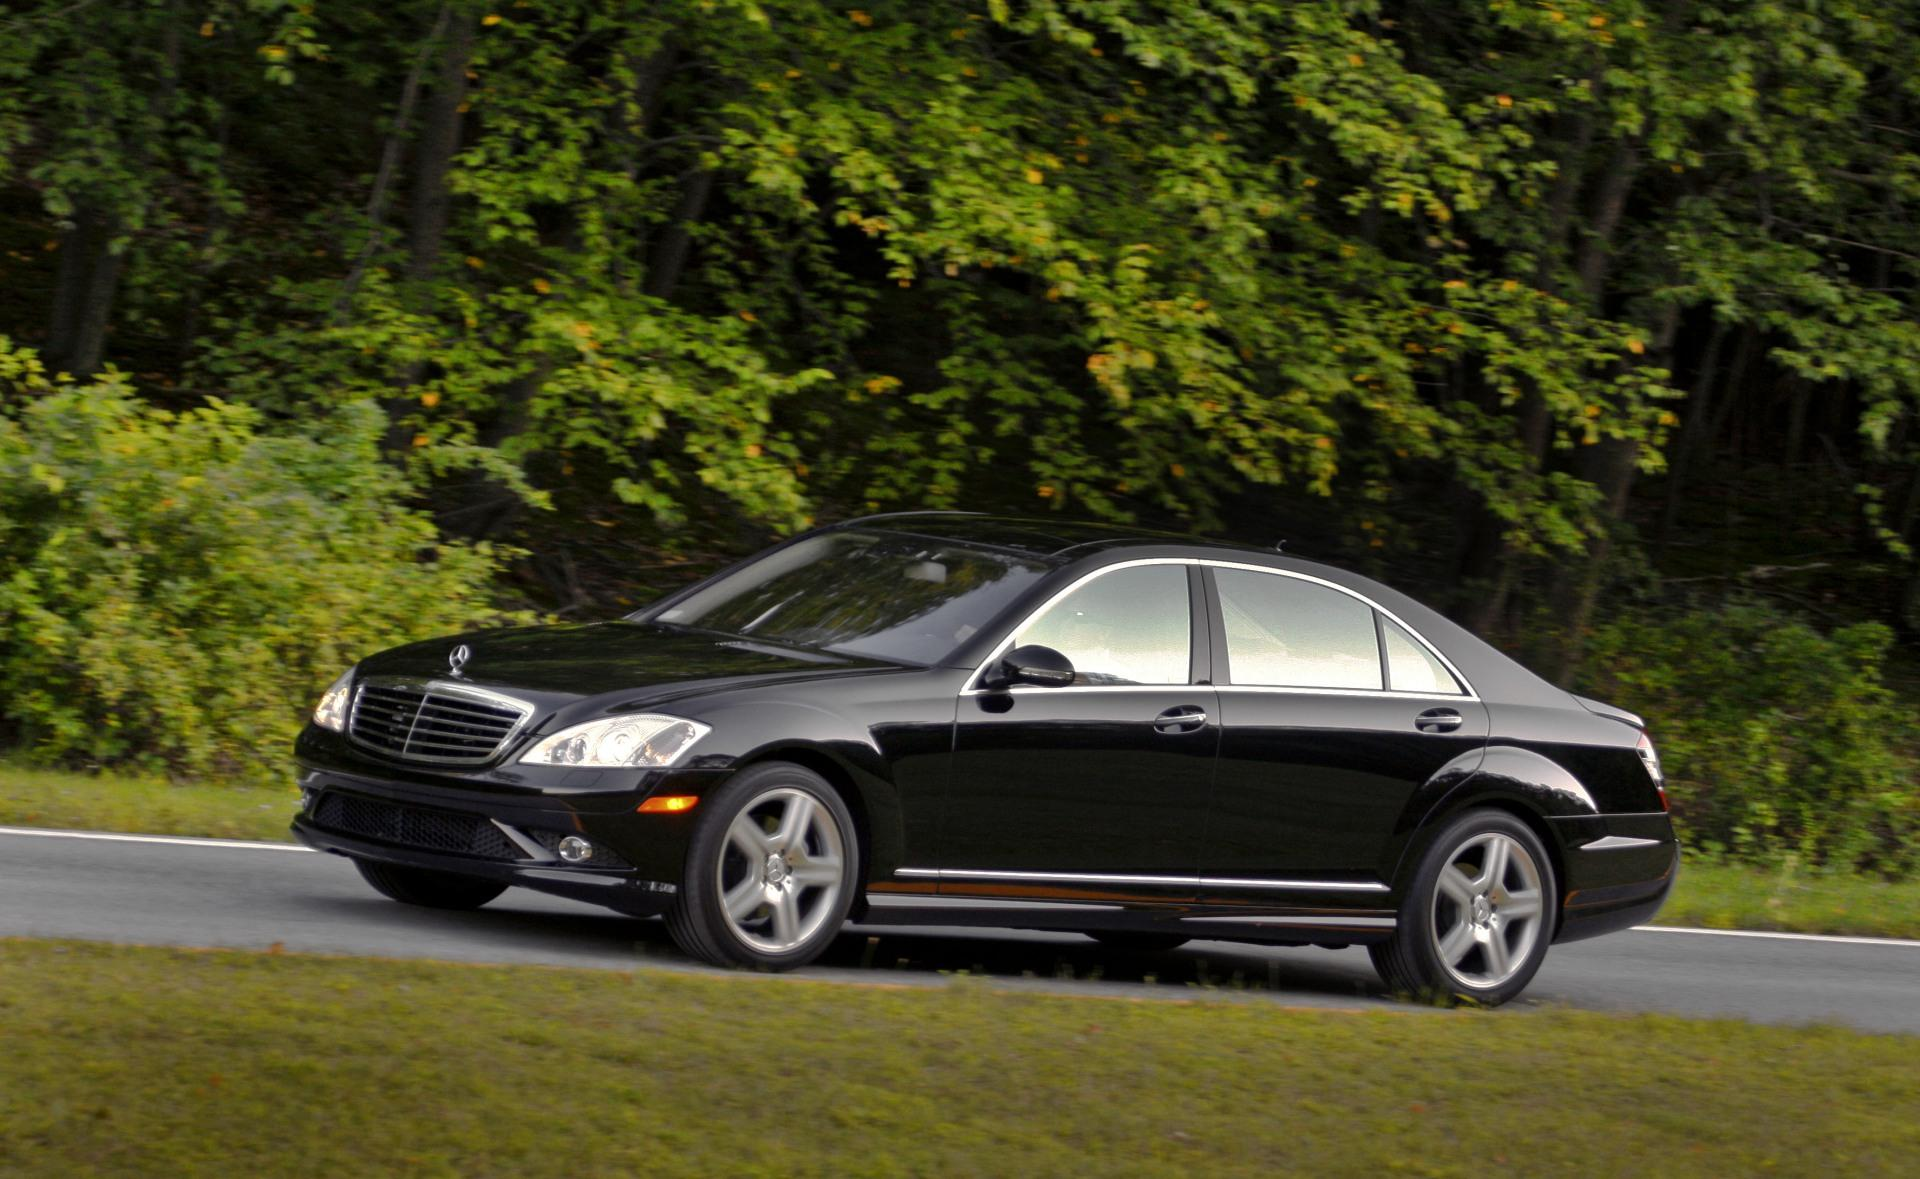 2009 mercedes benz s class news and information for Mercedes benz ss 550